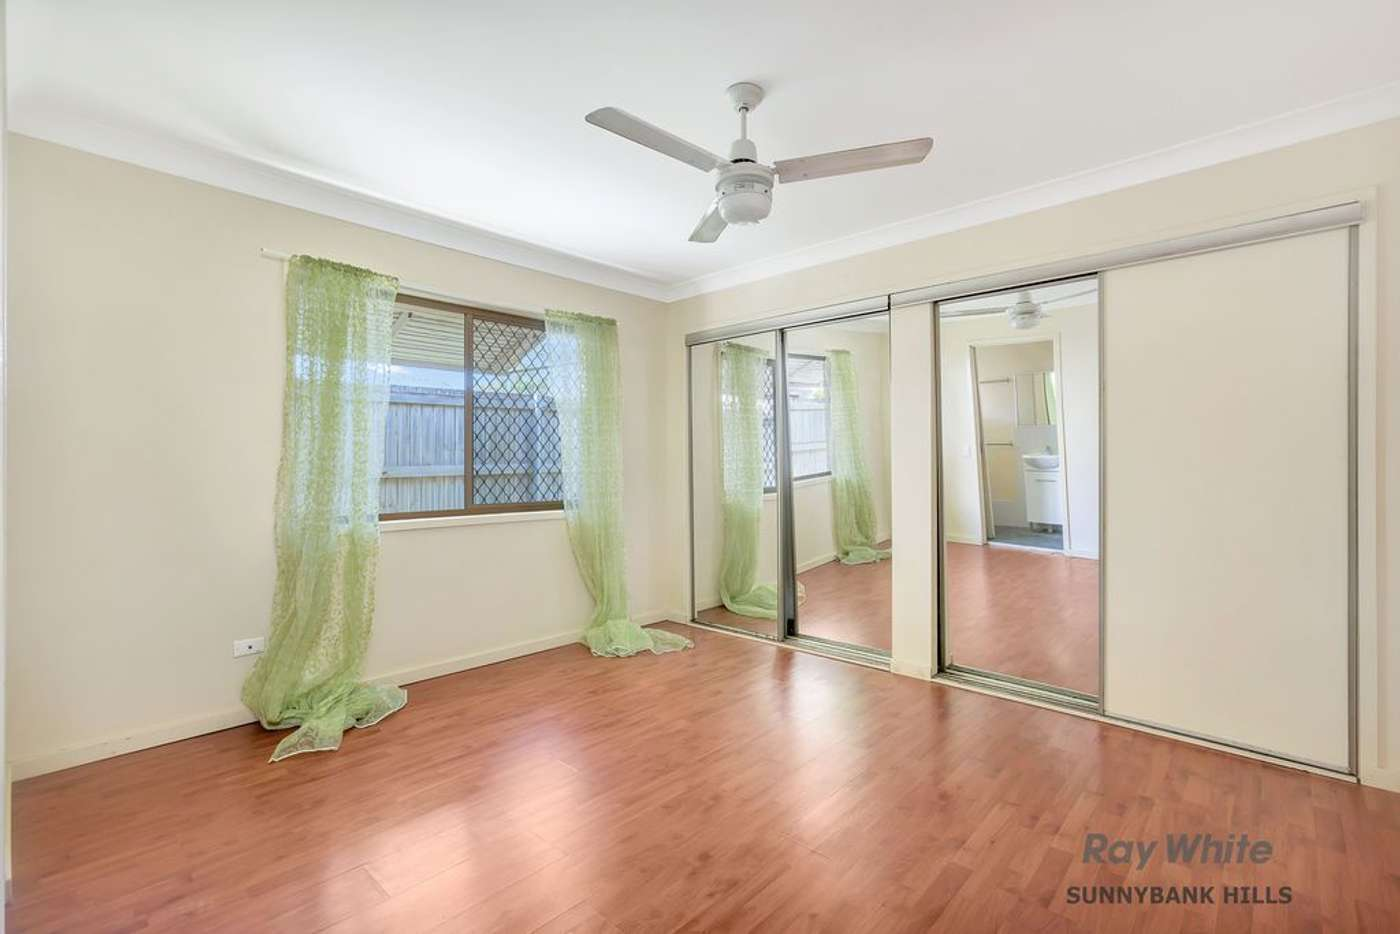 Sixth view of Homely house listing, 7 Excelsa Street, Sunnybank Hills QLD 4109